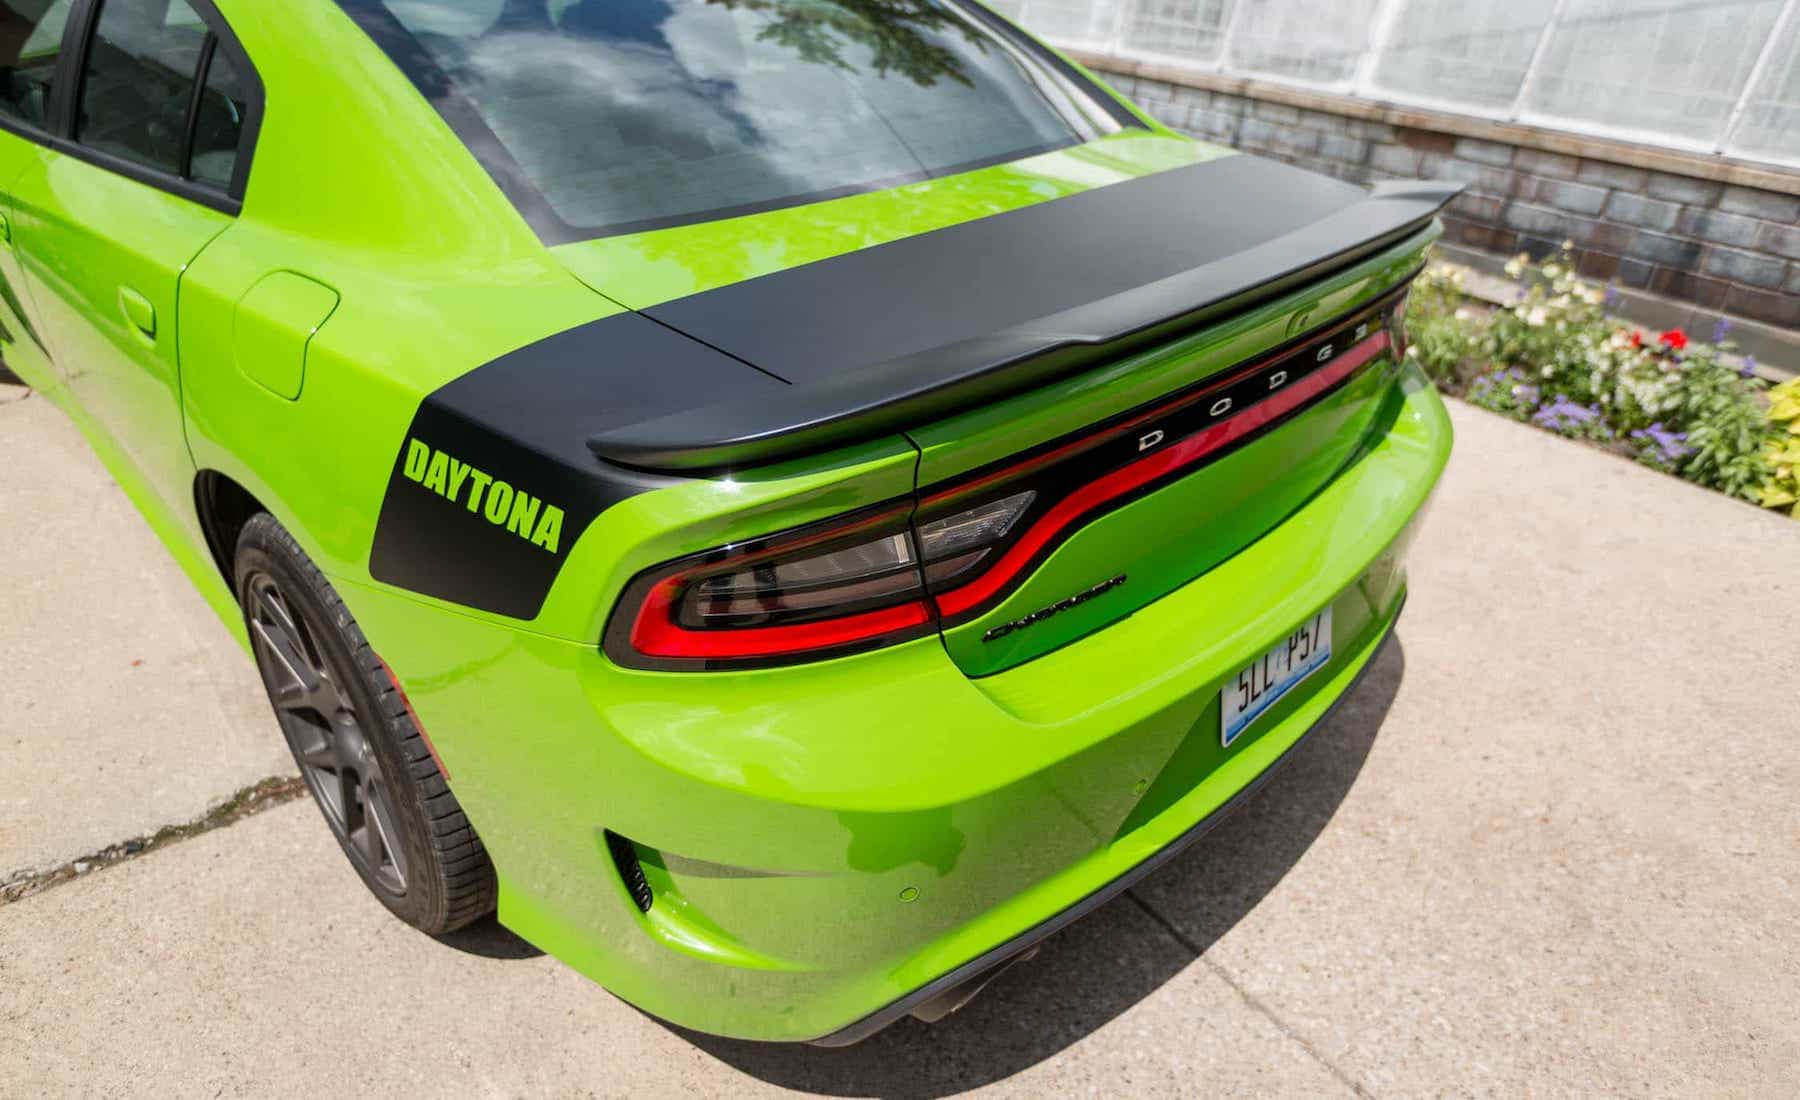 2017 Dodge Charger Daytona 5.7L V8 Exterior View Rear Spoiler And Bumper (Photo 23 of 38)